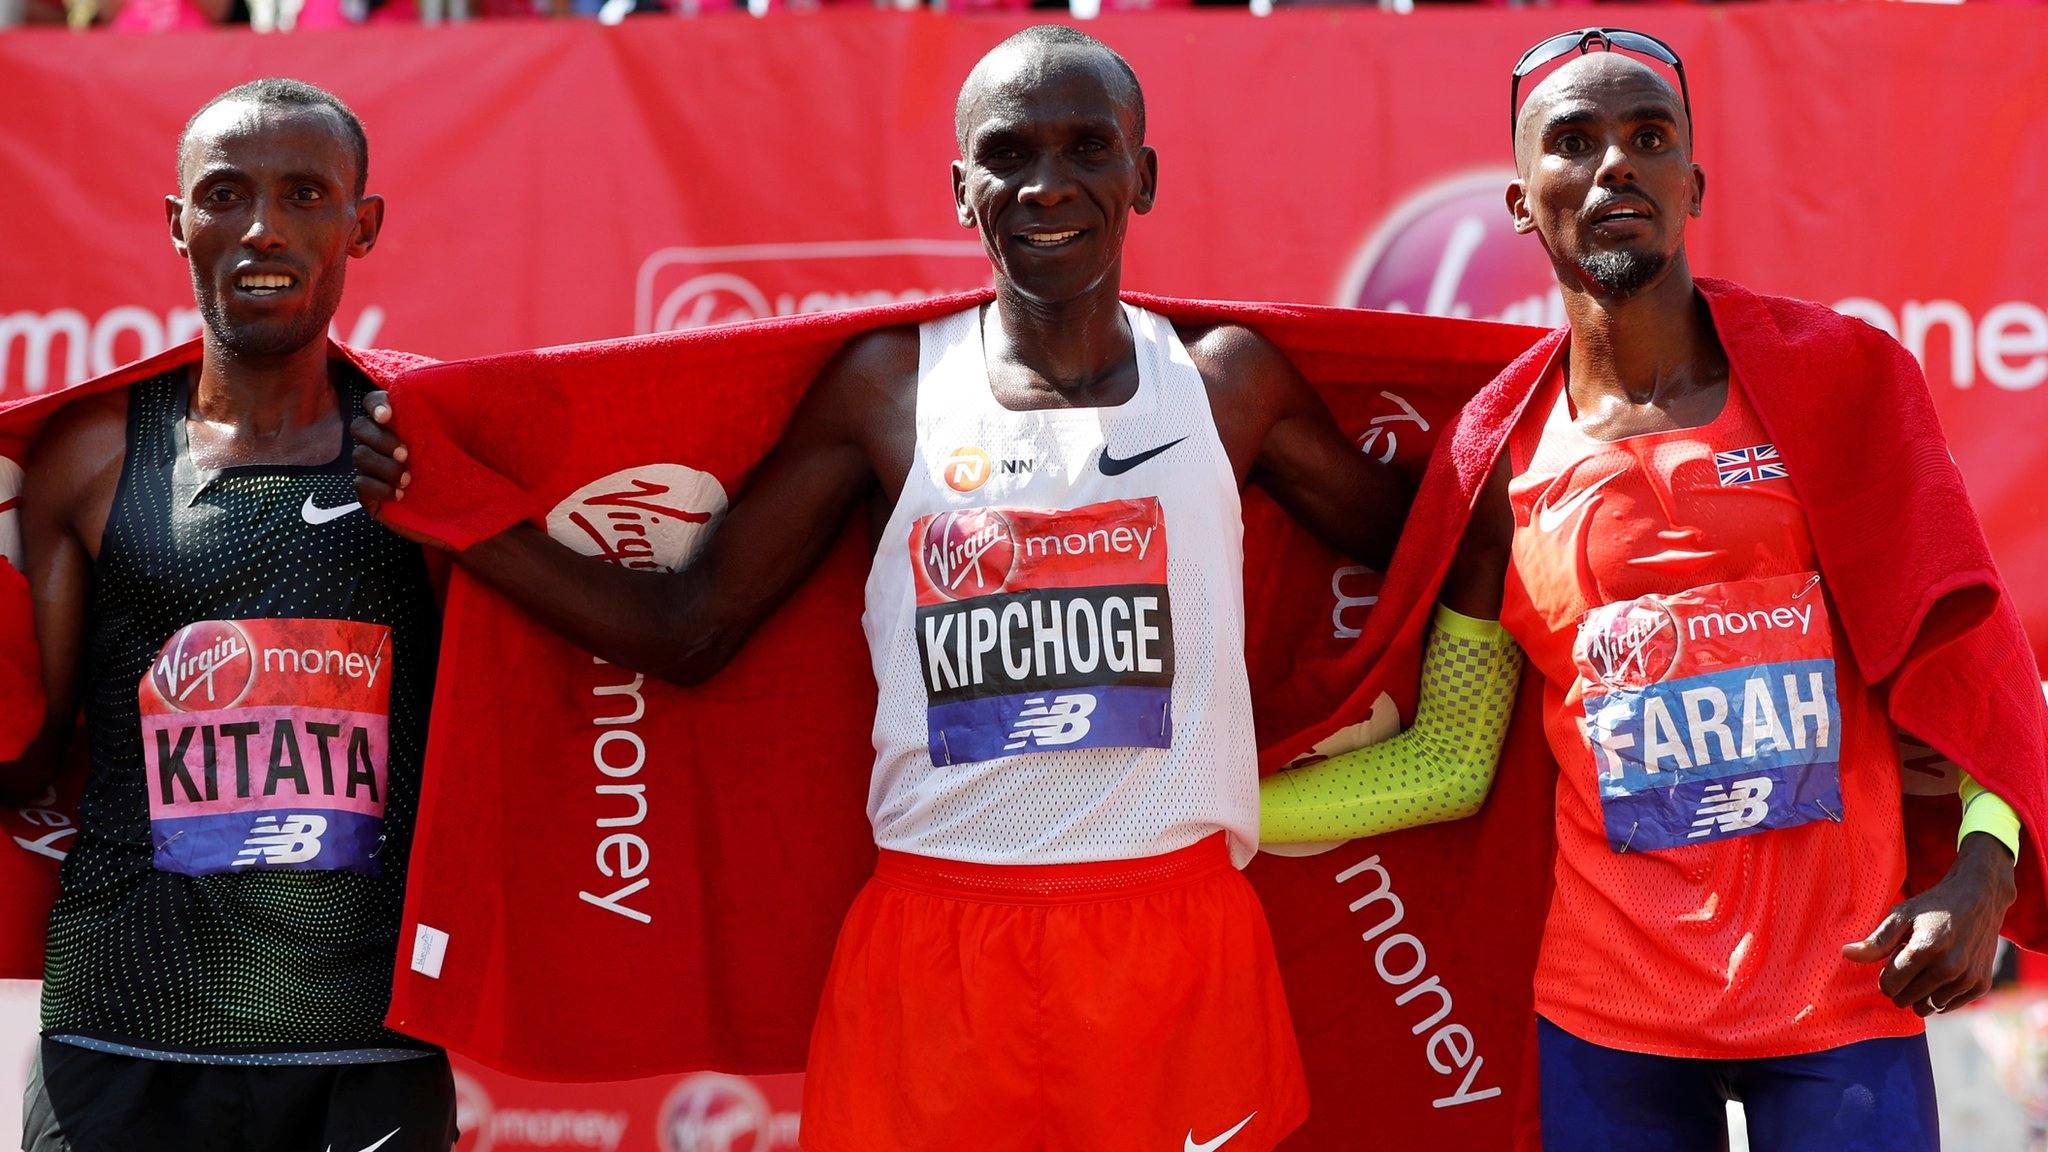 Farah finishes third in London Marathon | BBC